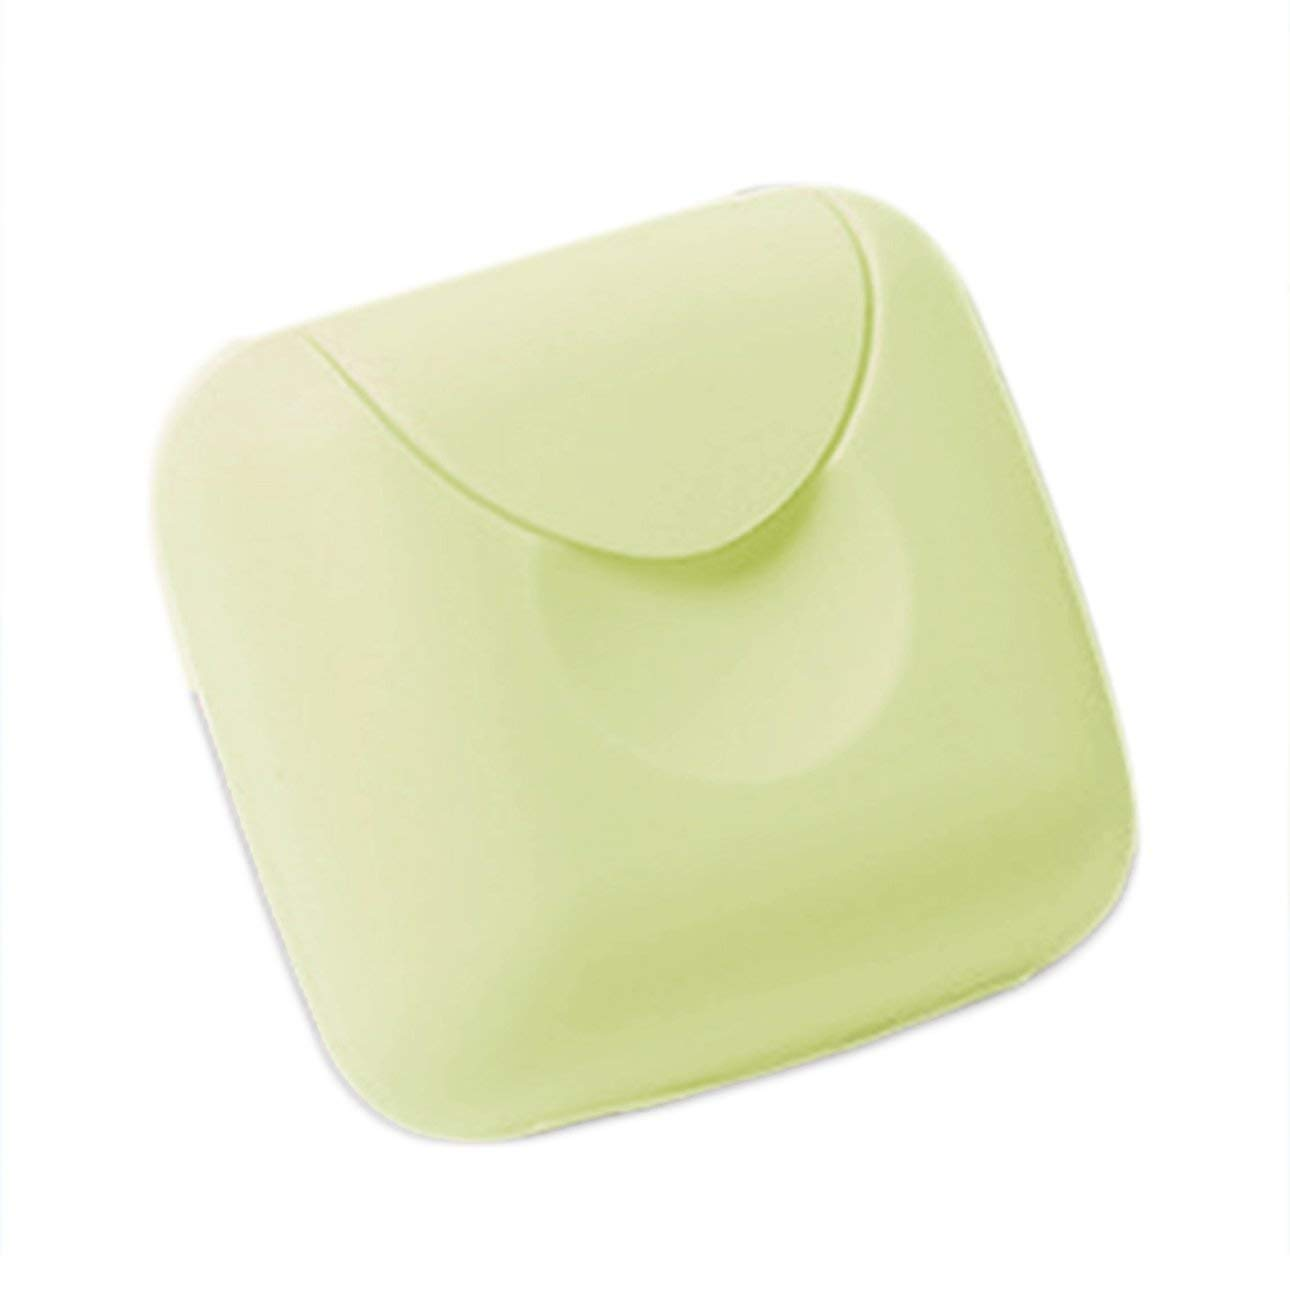 Liobaba Candy Color Removable Soap Drainers Plastic Soap Holder Container Soap Saver Box Case for Bathroom Shower Home Outdoor Travel